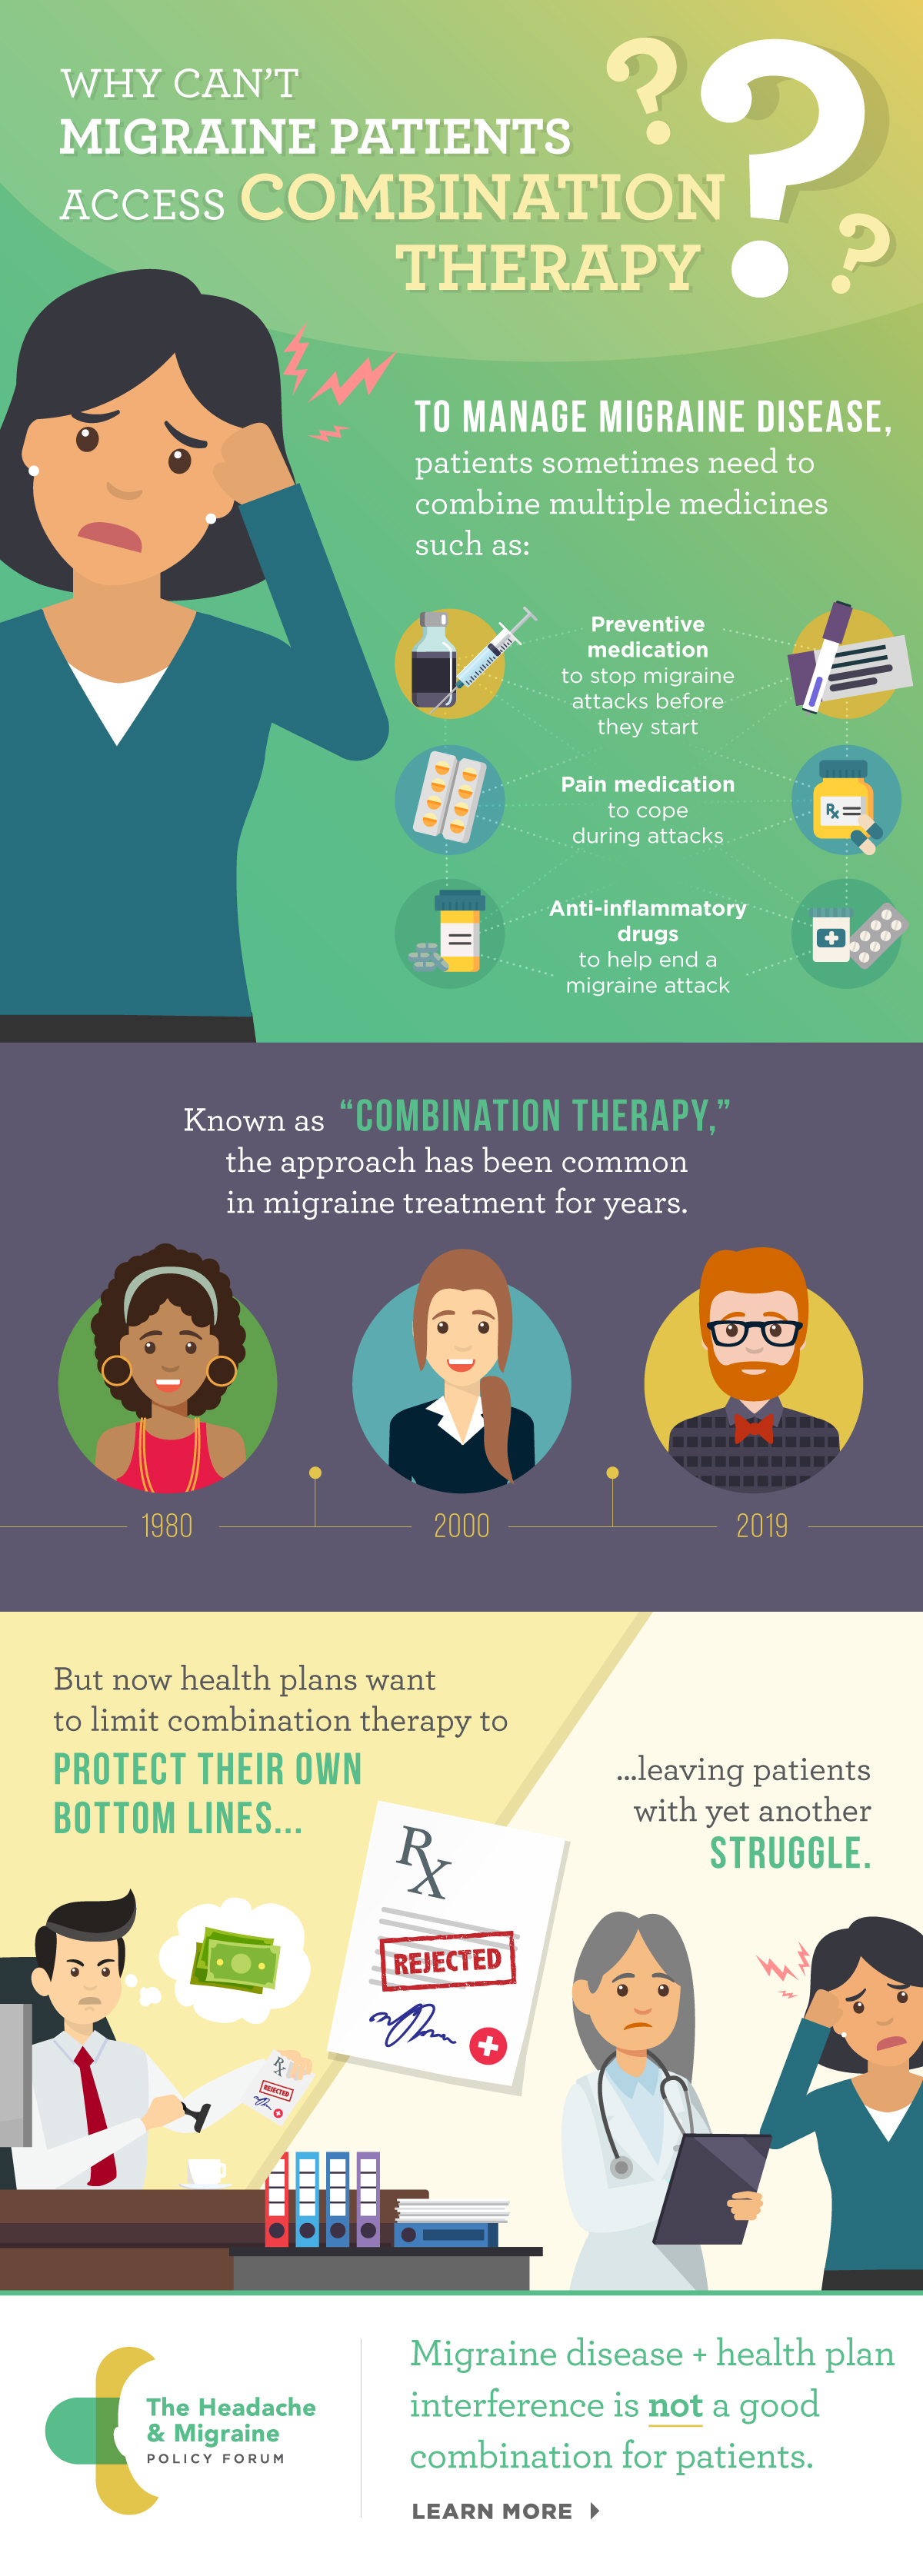 HMPF_Combination Therapy_Infographic_May 2019.jpg